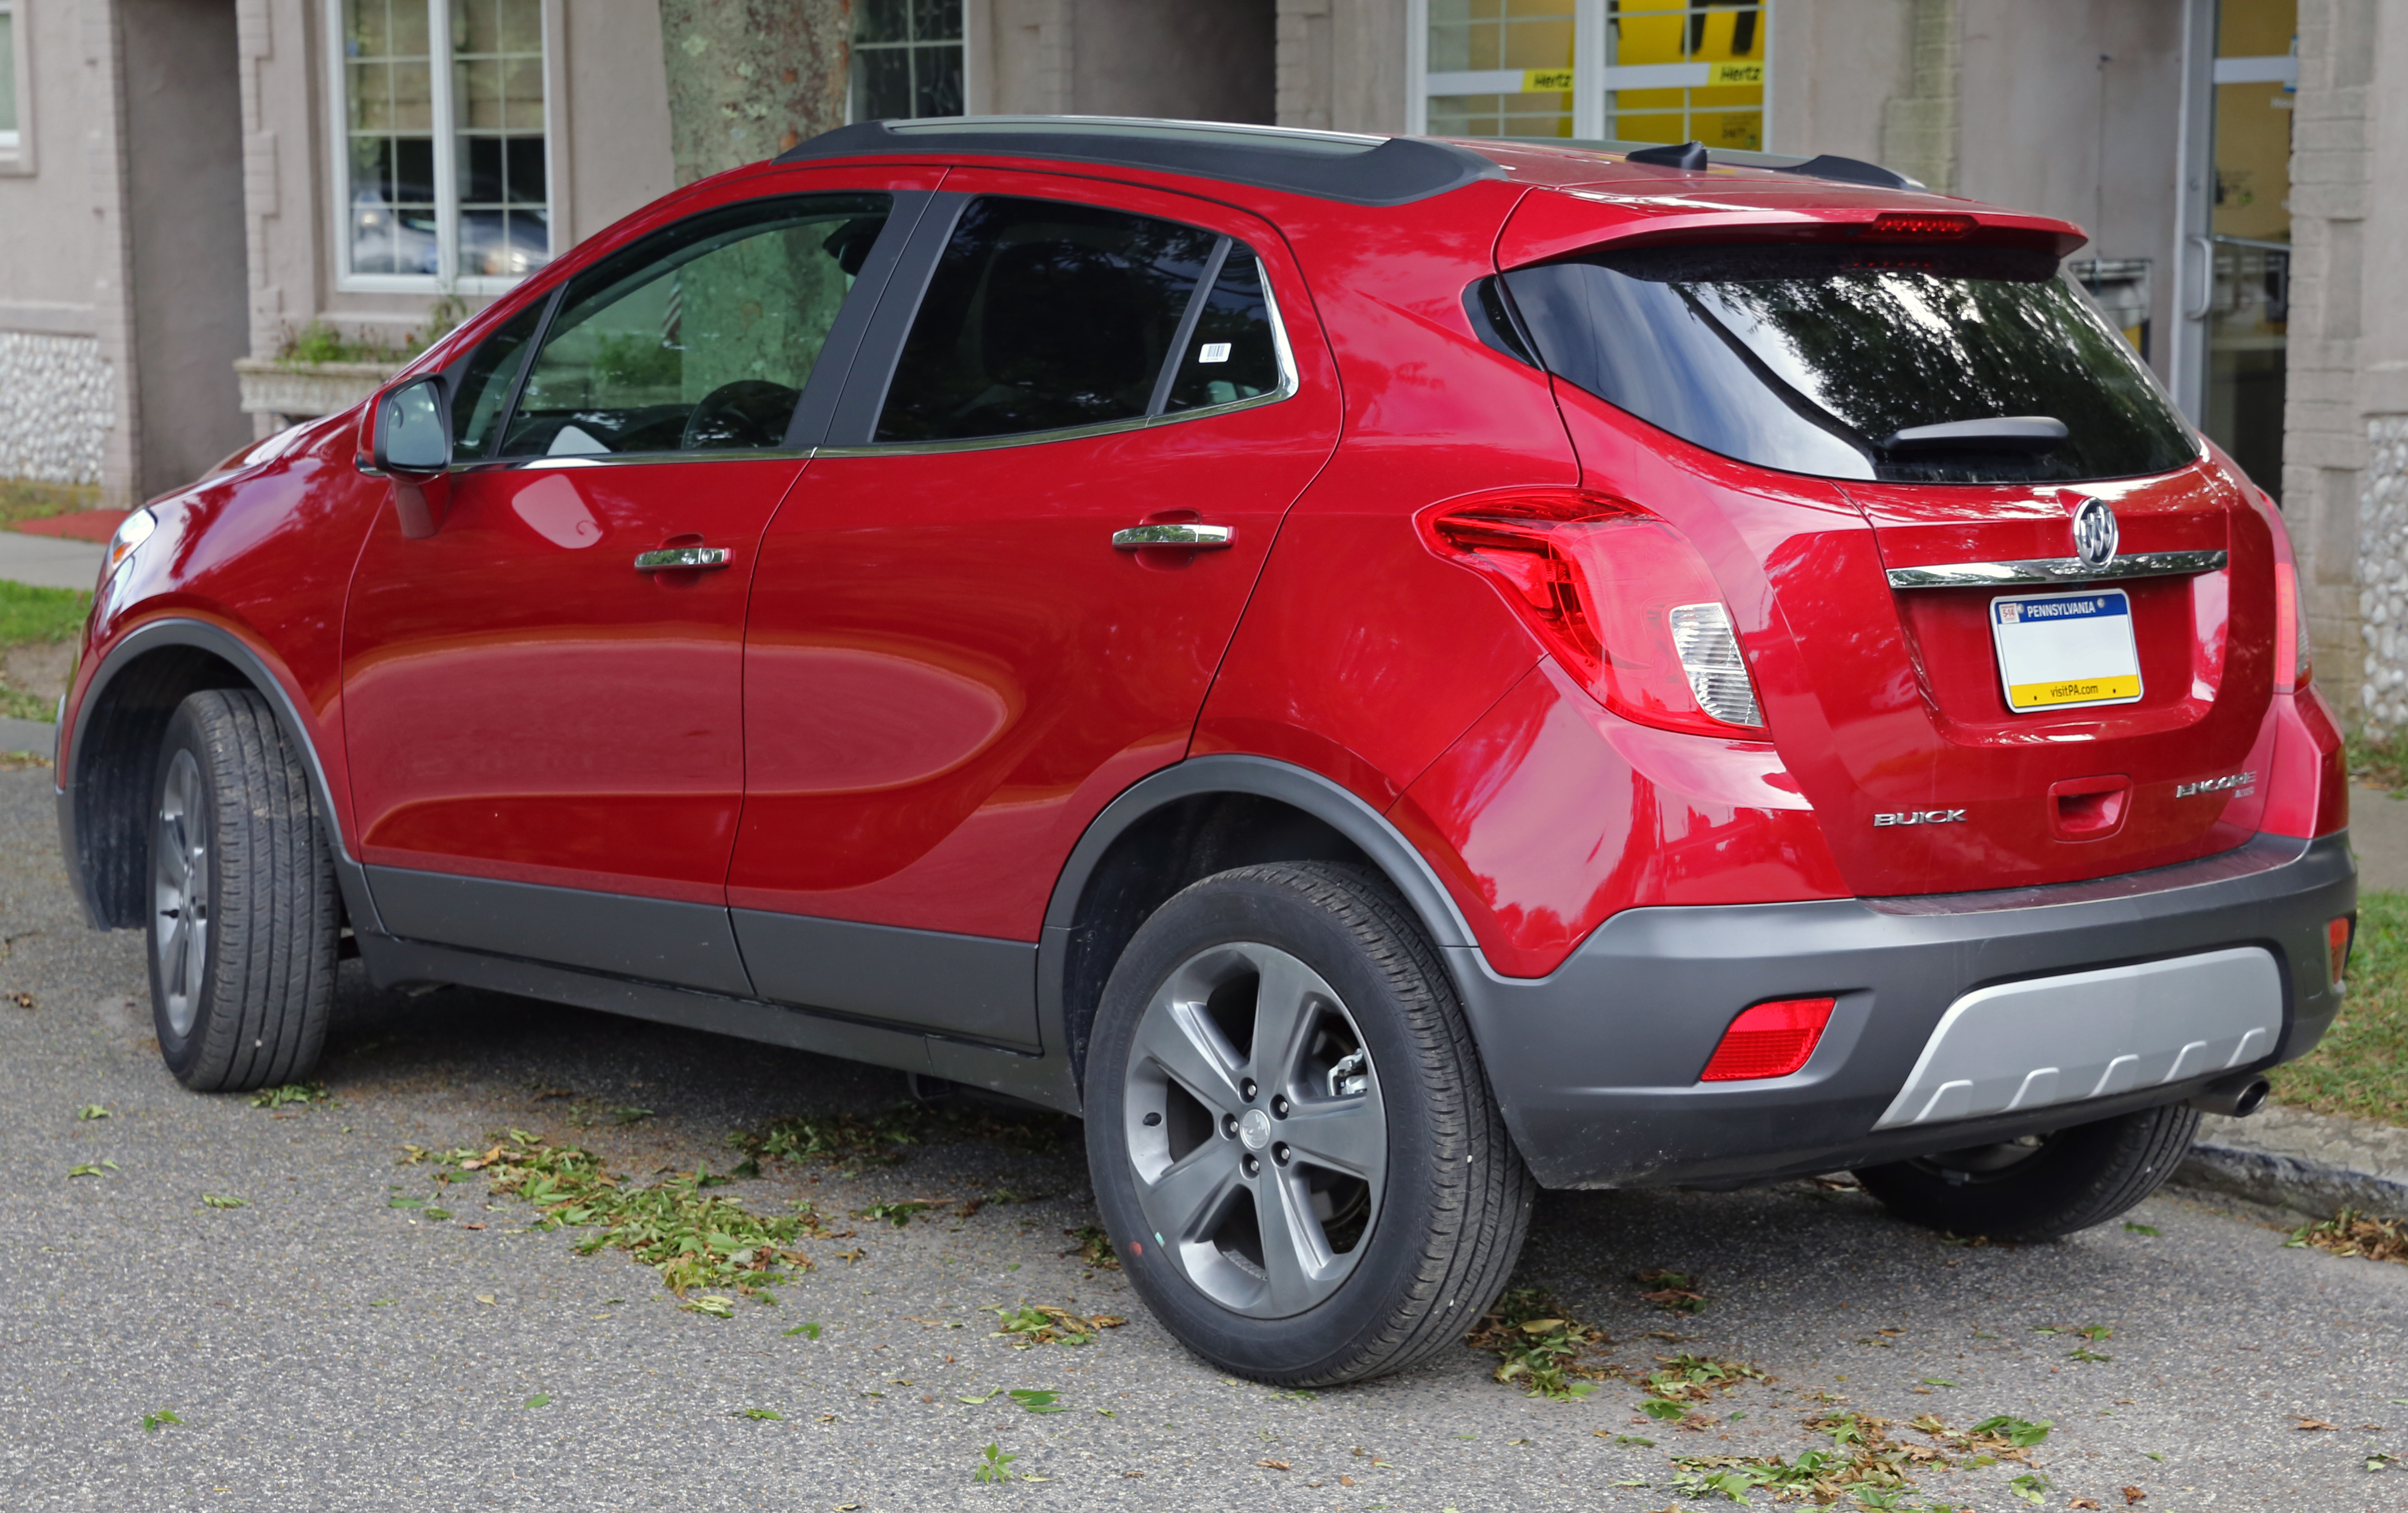 file 2013 buick encore dk red rear wikimedia. Black Bedroom Furniture Sets. Home Design Ideas